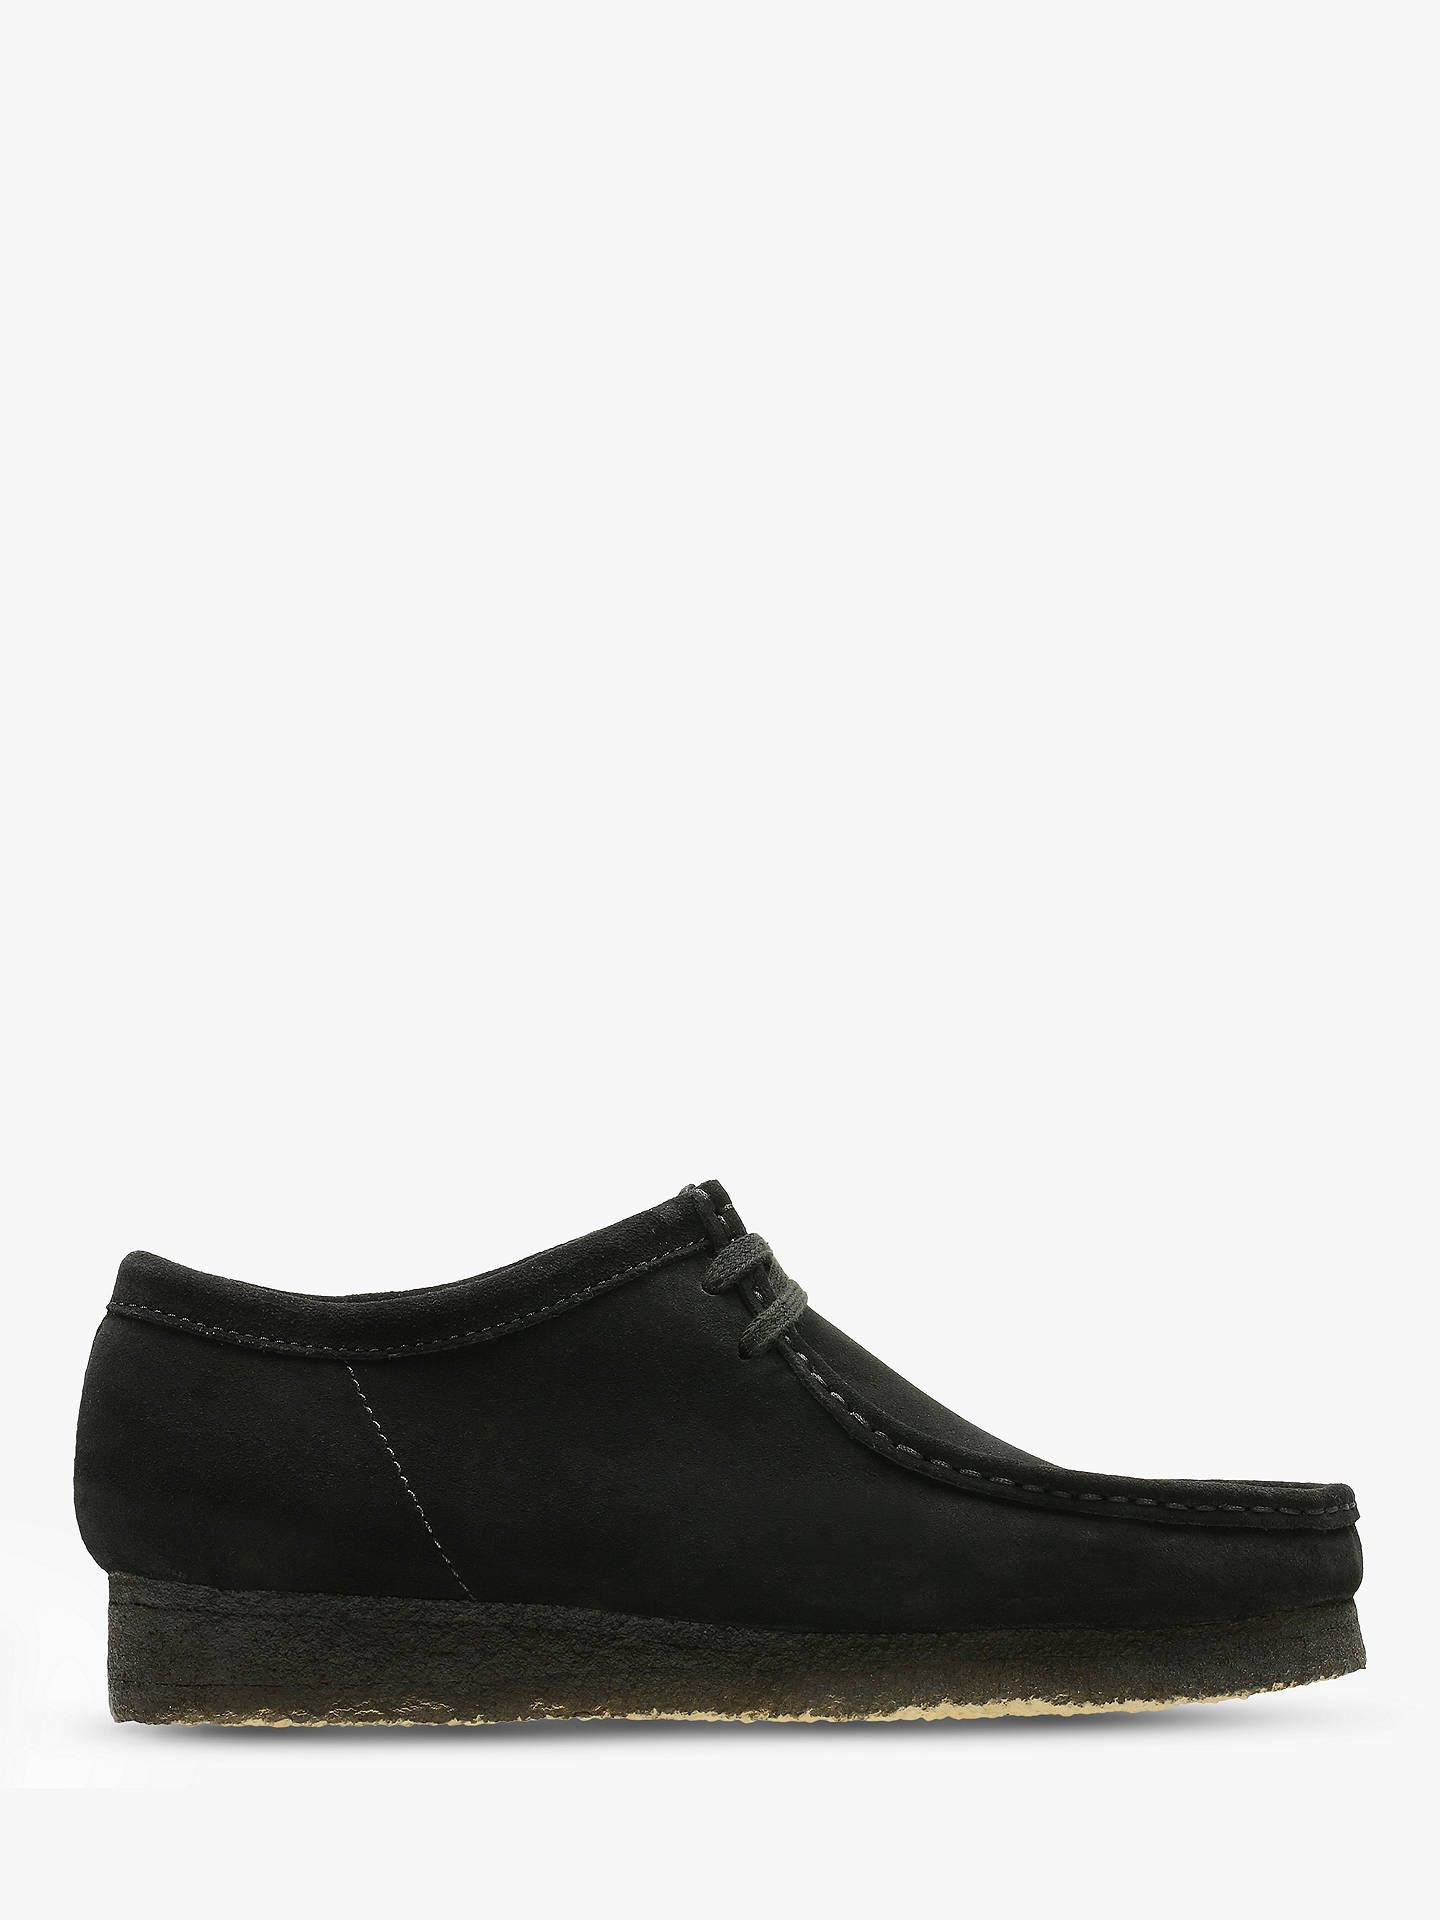 a43fc018f5aed7 Buy Clarks Originals Suede Wallabee Shoes, Black, 6 Online at johnlewis.com  ...